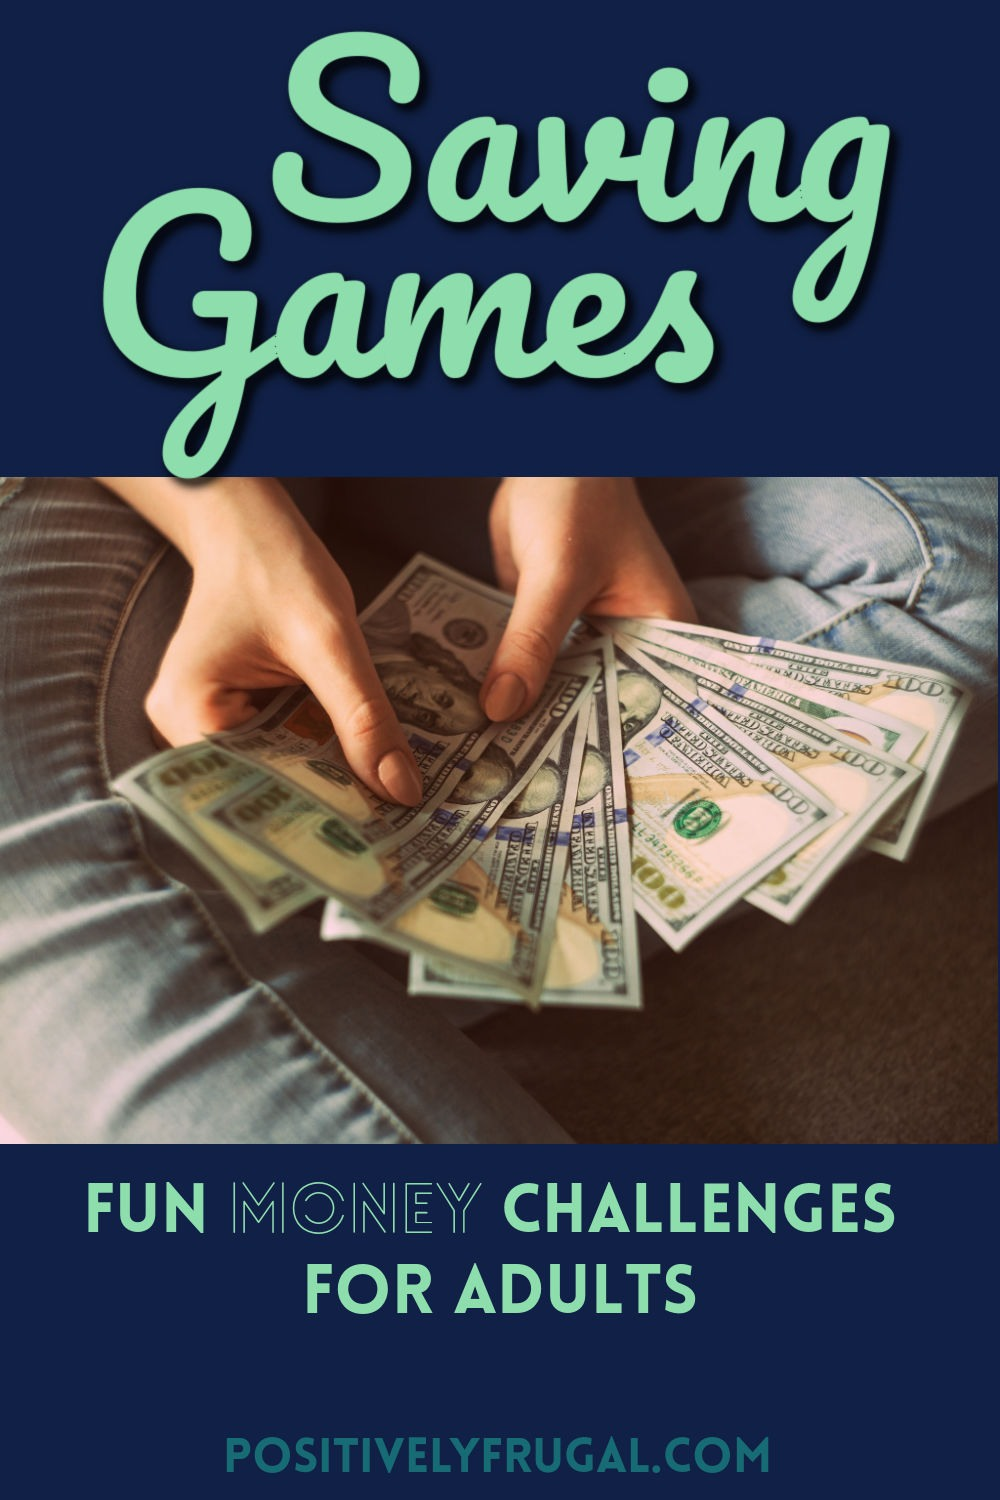 Saving Games Challenges for Adults by PositivelyFrugal.com